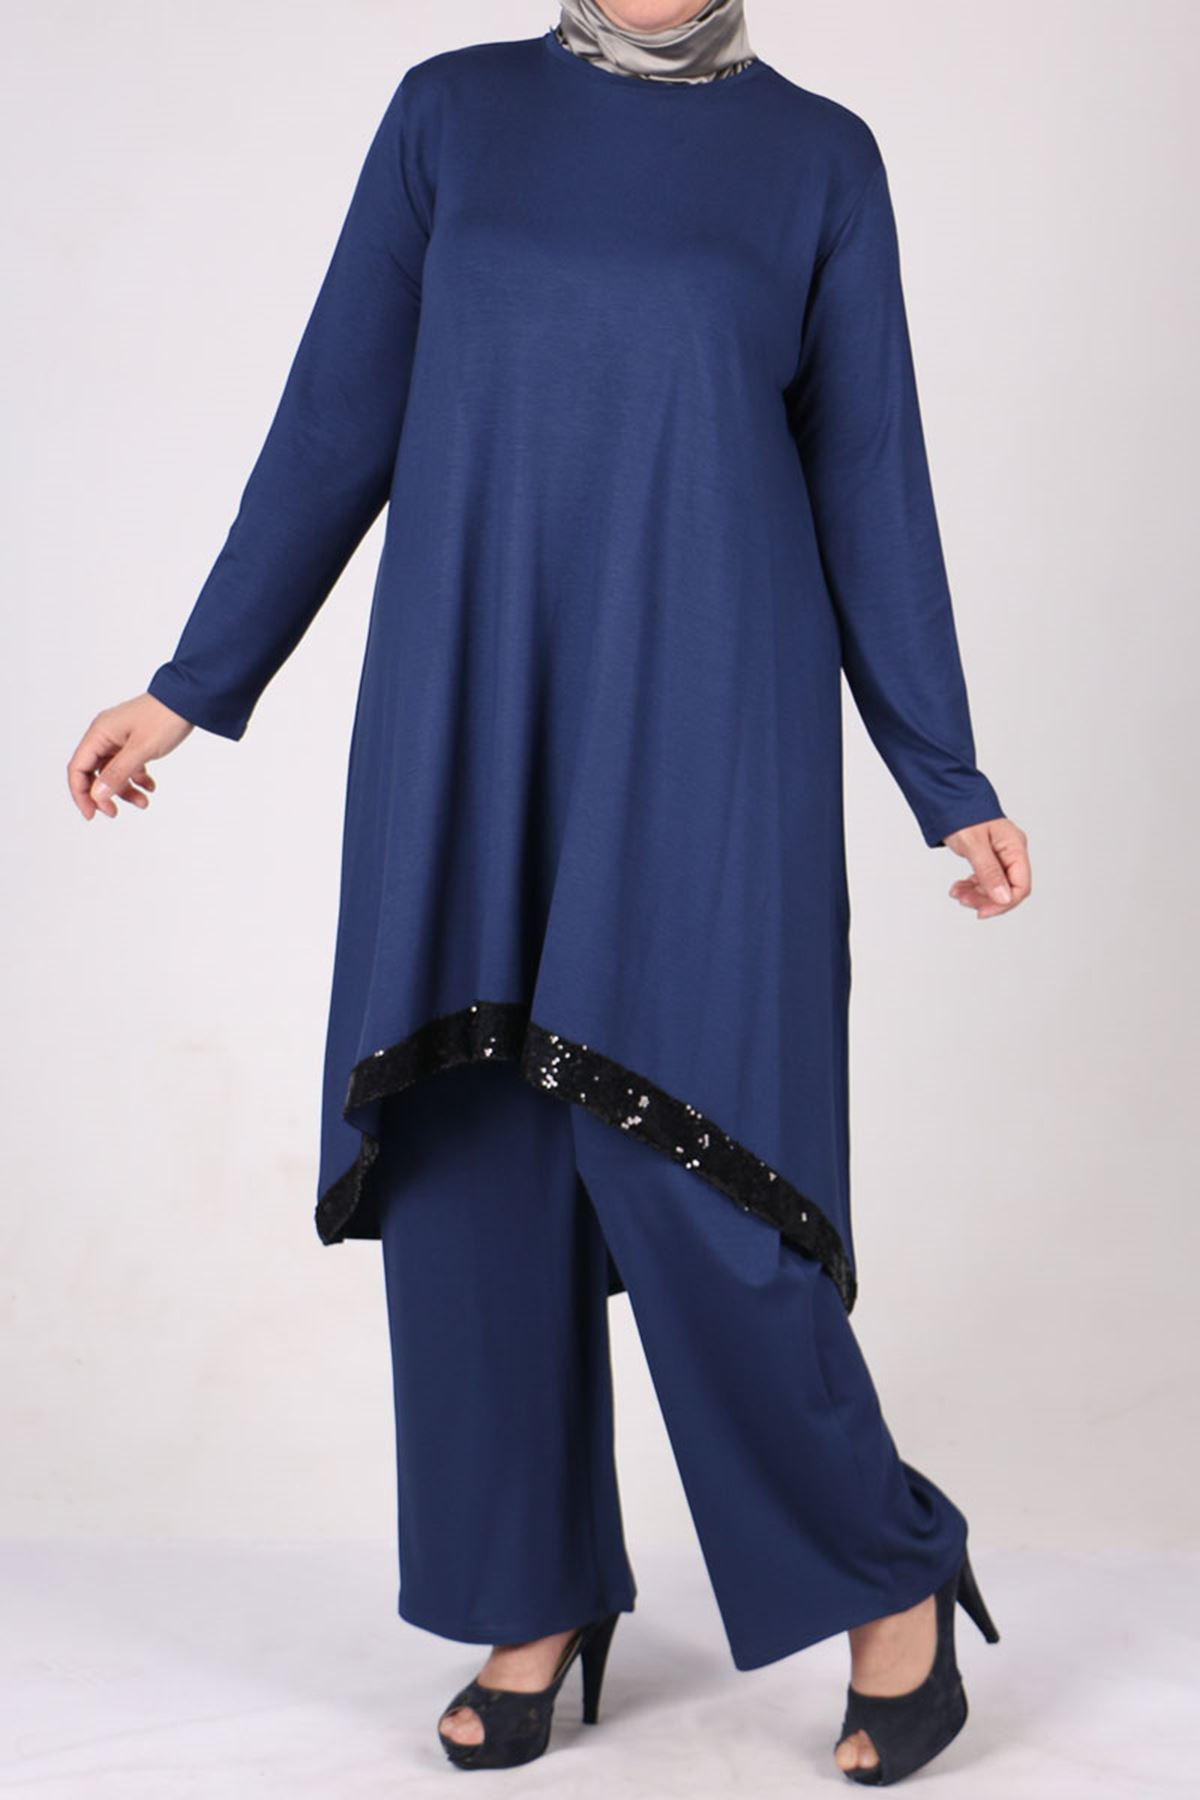 7598 Plus Size Two Piece Set with Tunic and Pants-Navy Blue